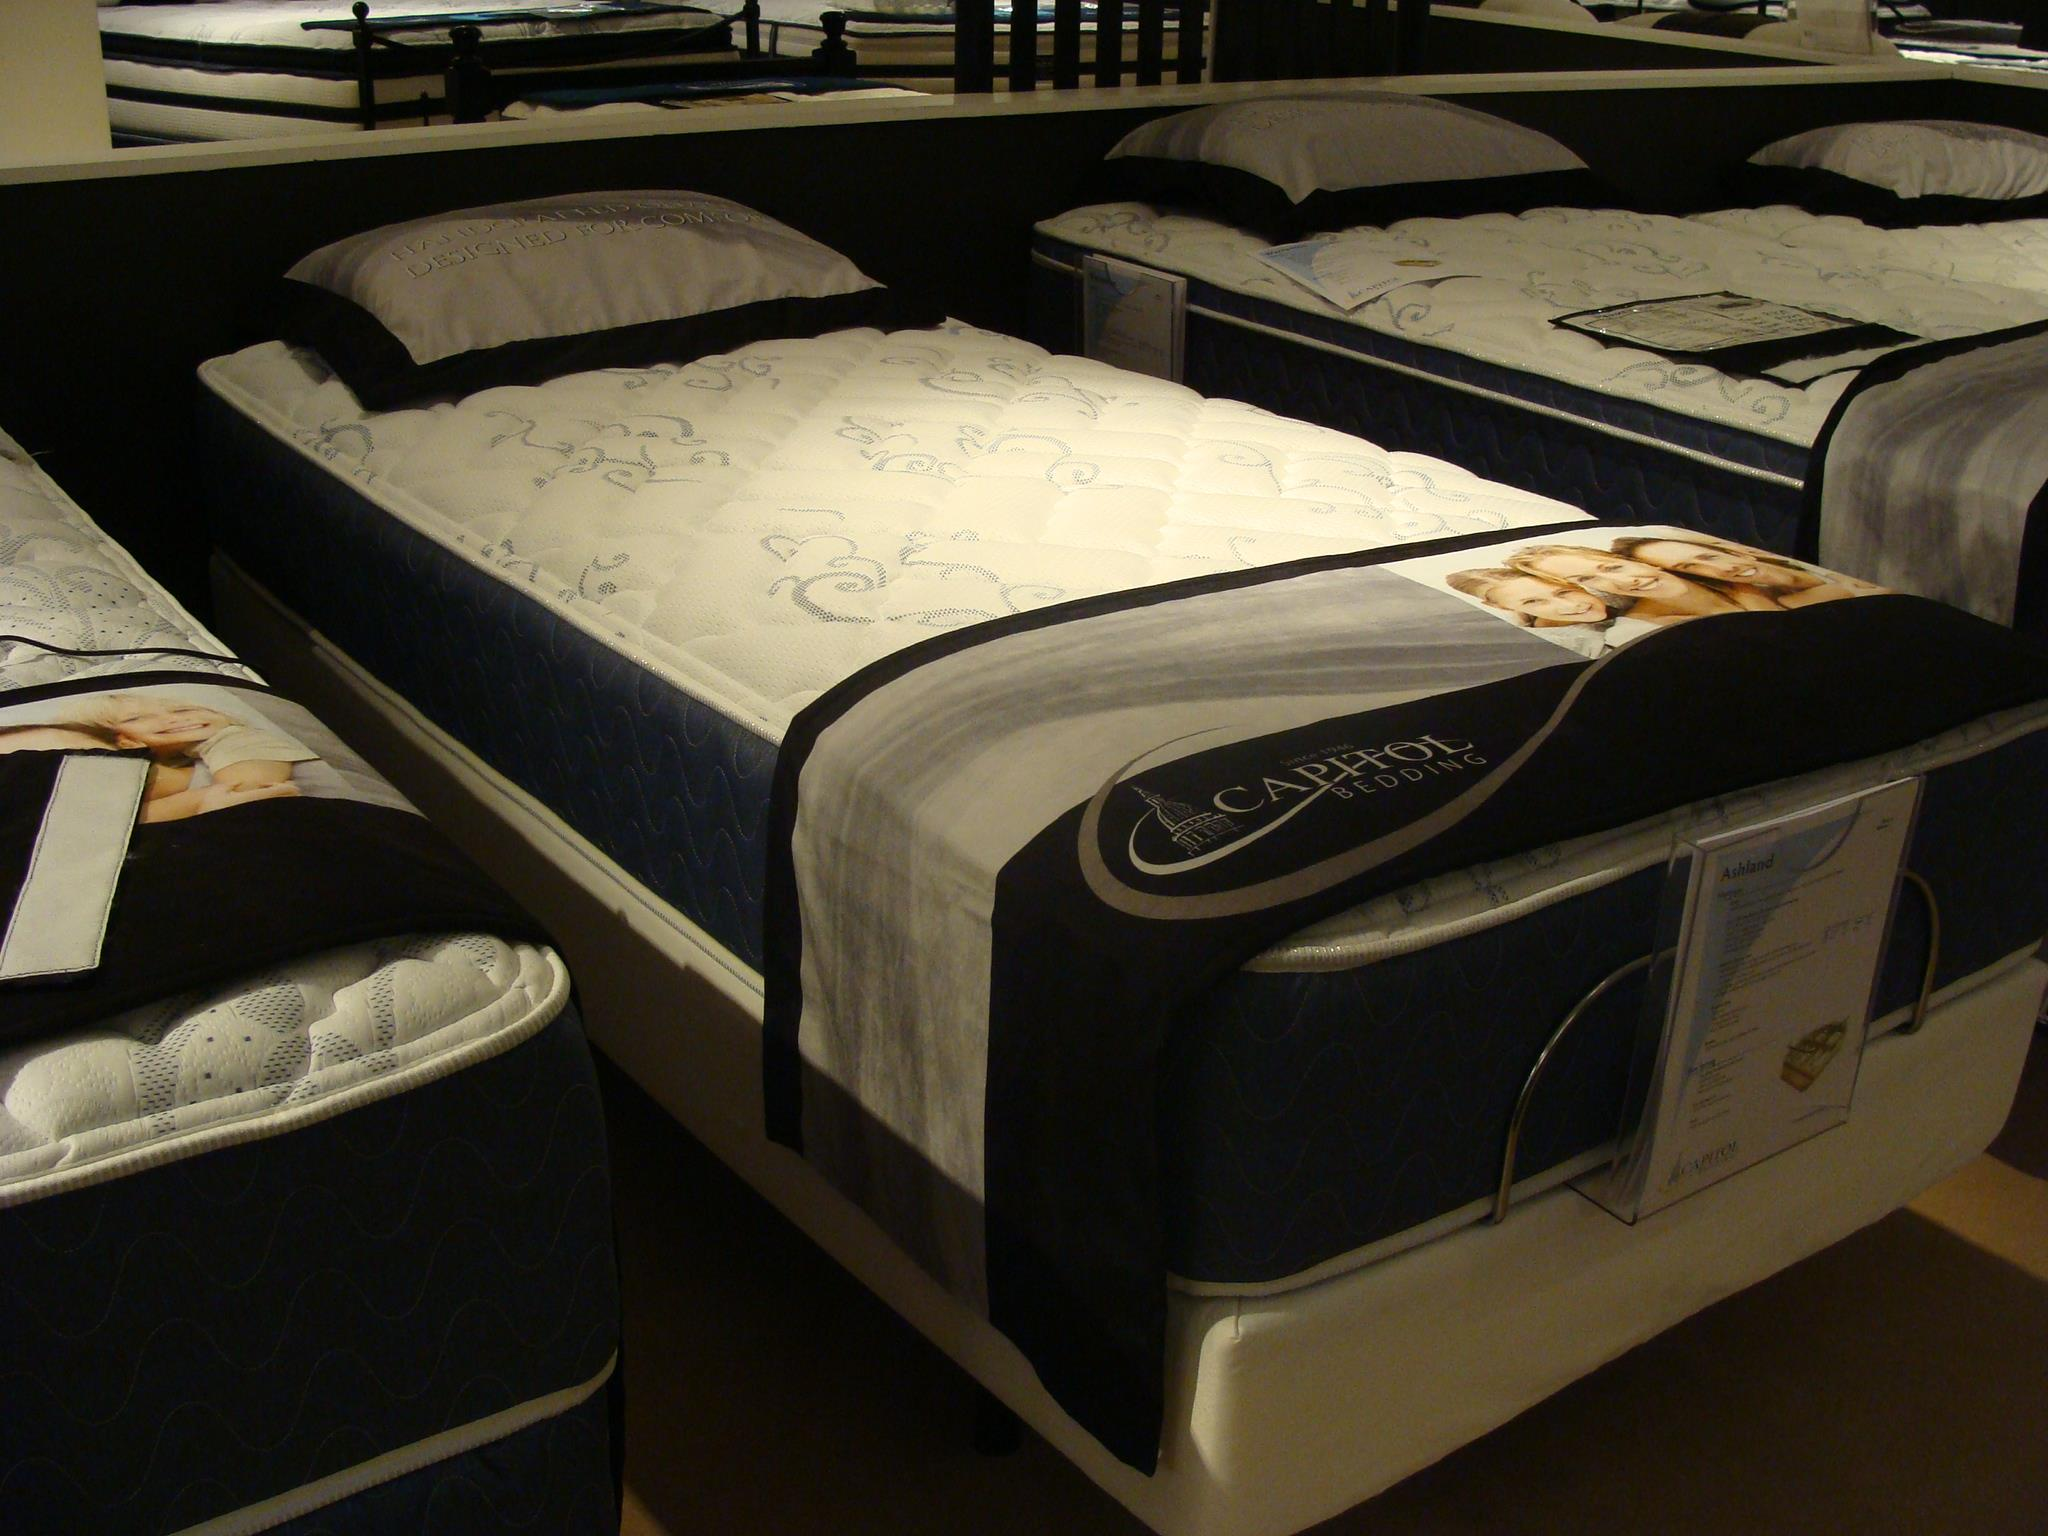 Capitol Bedding Ashland Twin Mattress Only - Item Number: VertiCoil-T